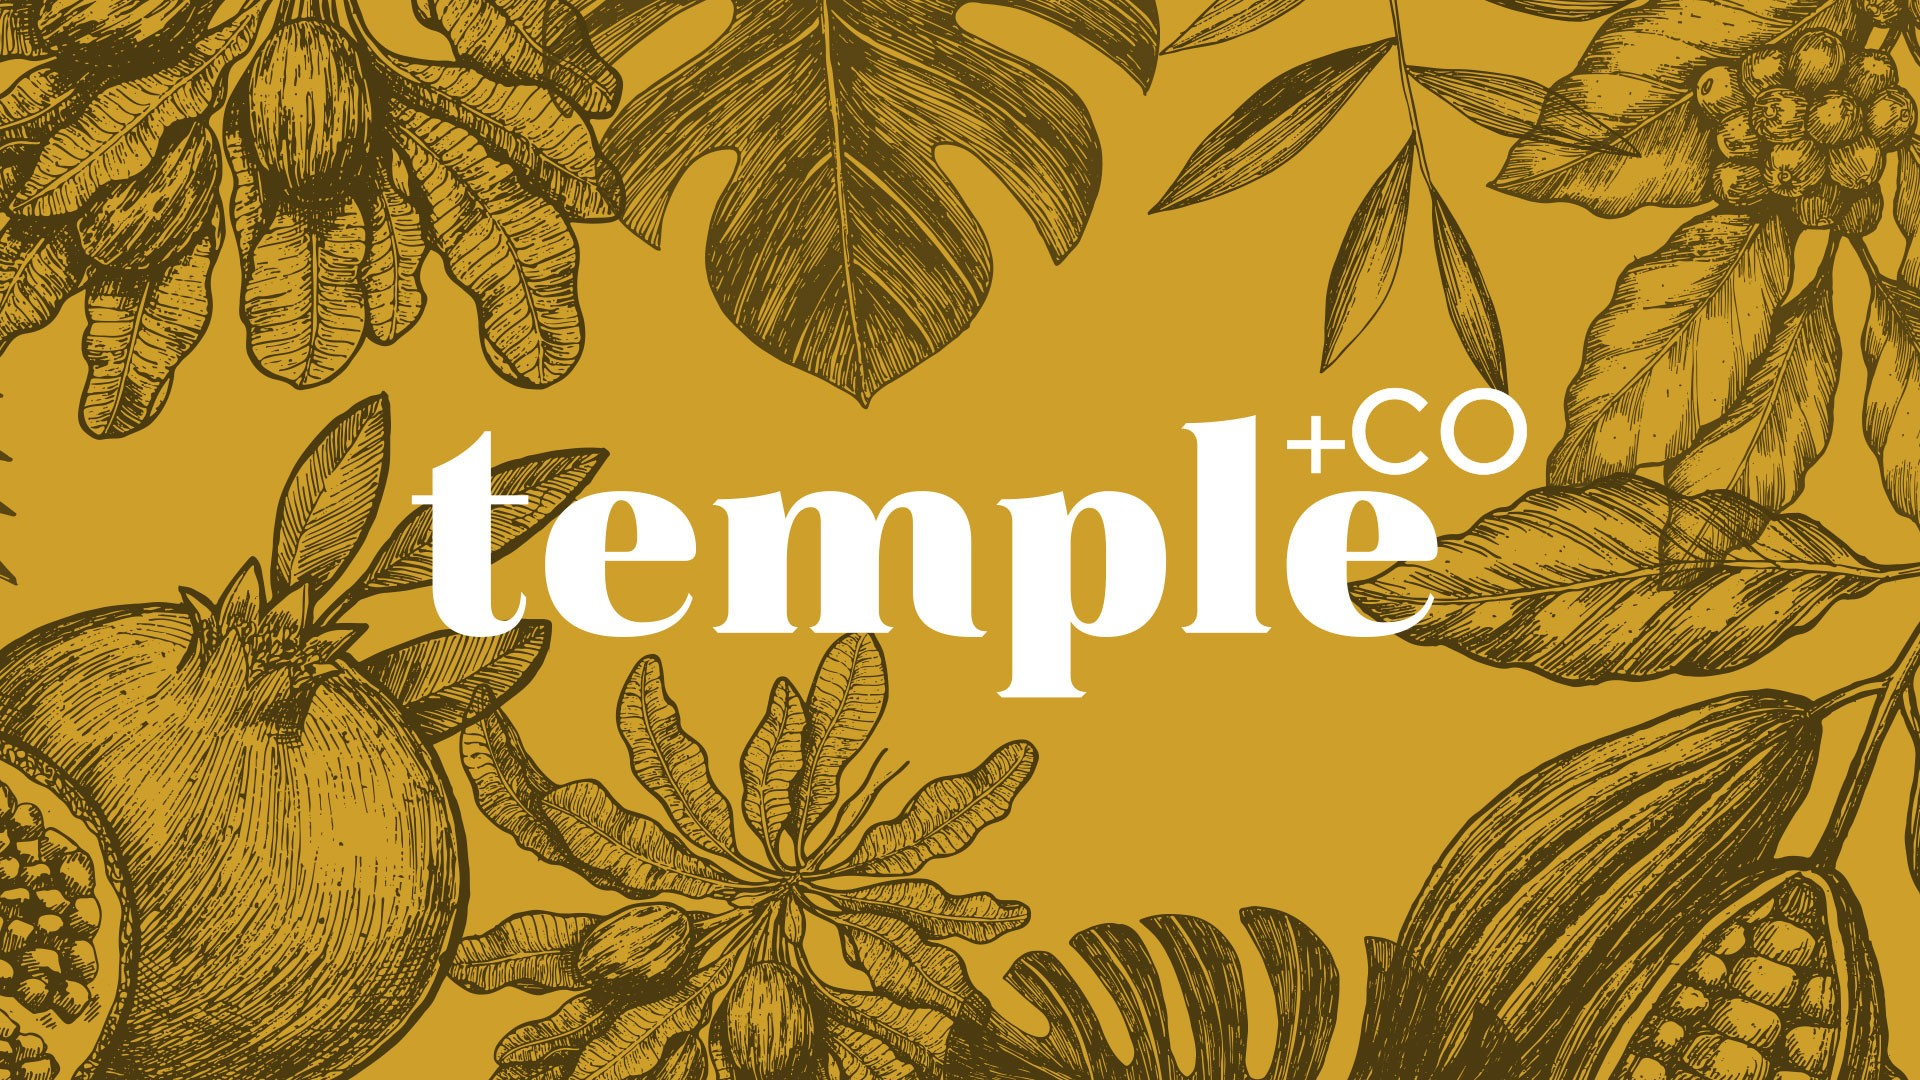 Temple+Co branding on patterned background